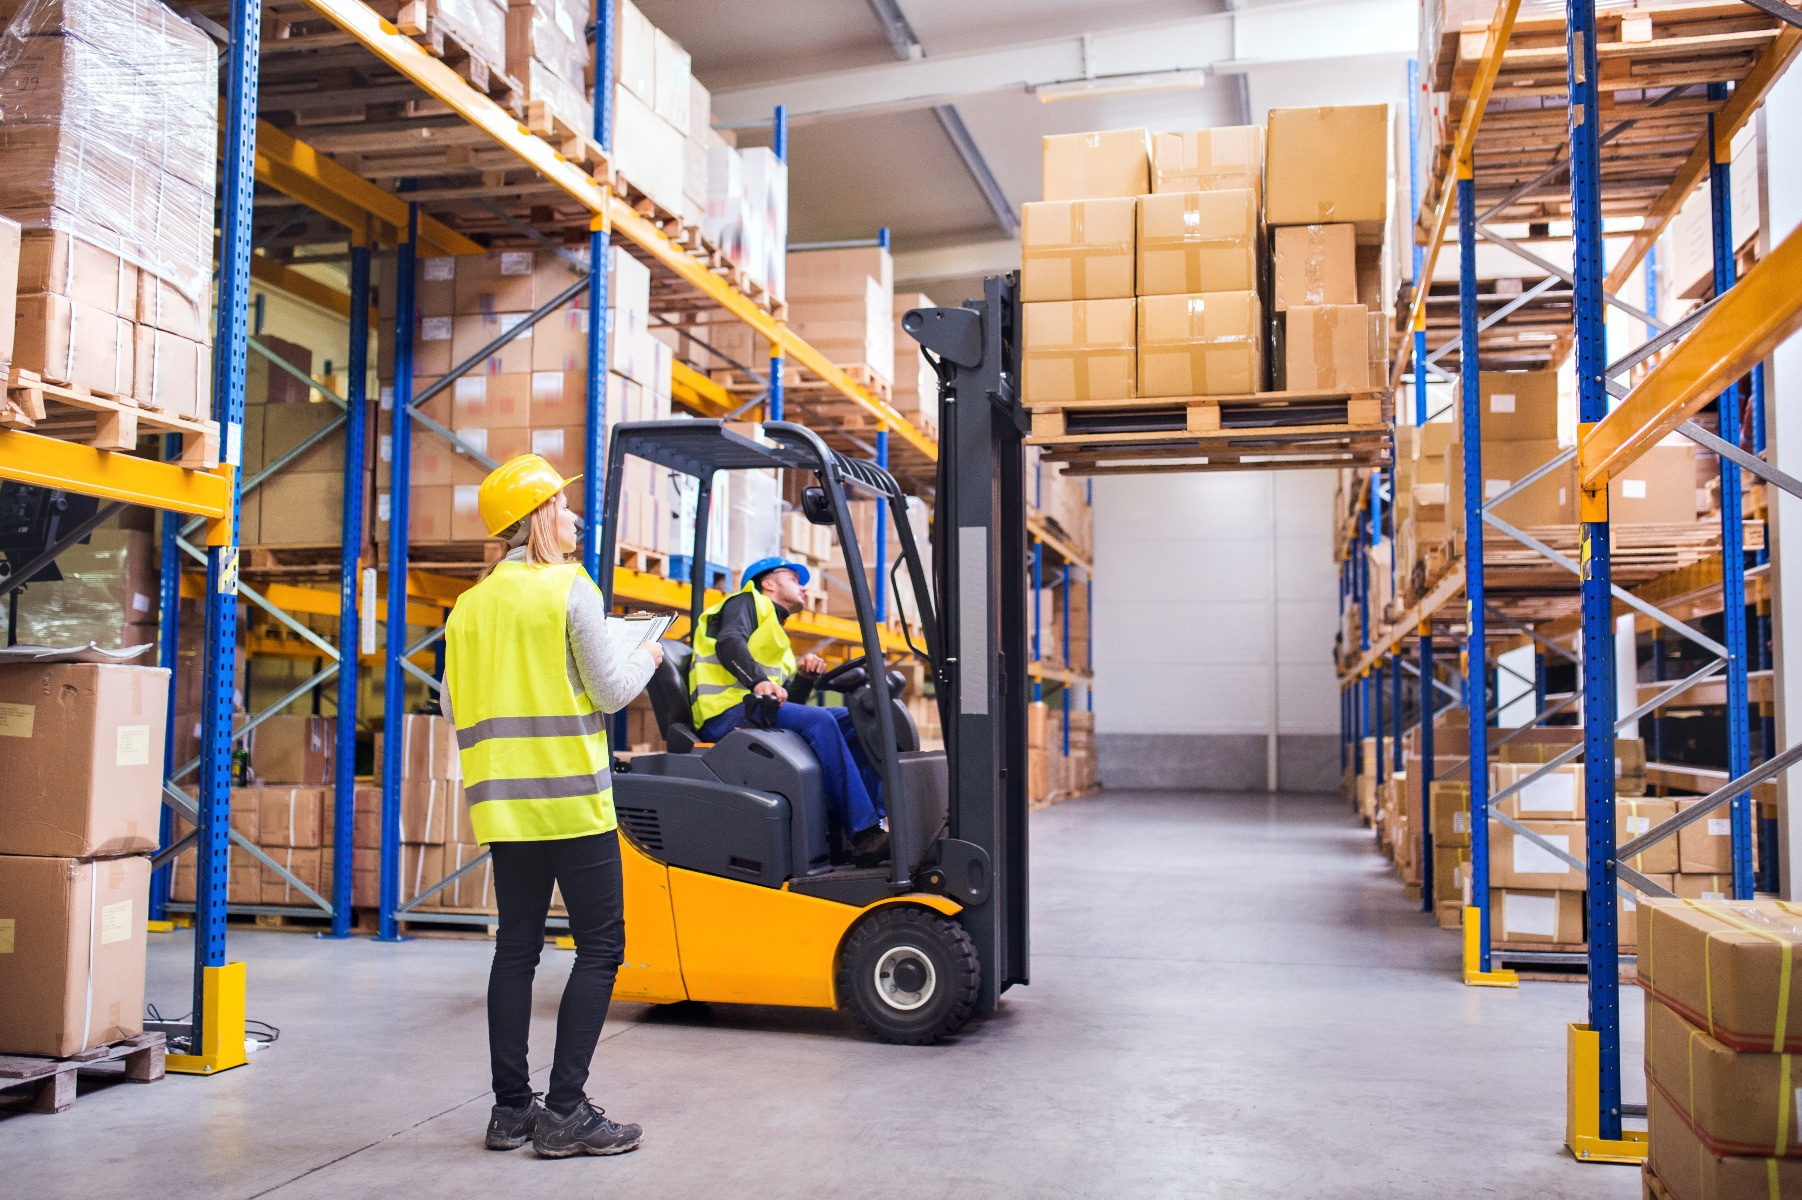 Man on forklift picking products in warehouse